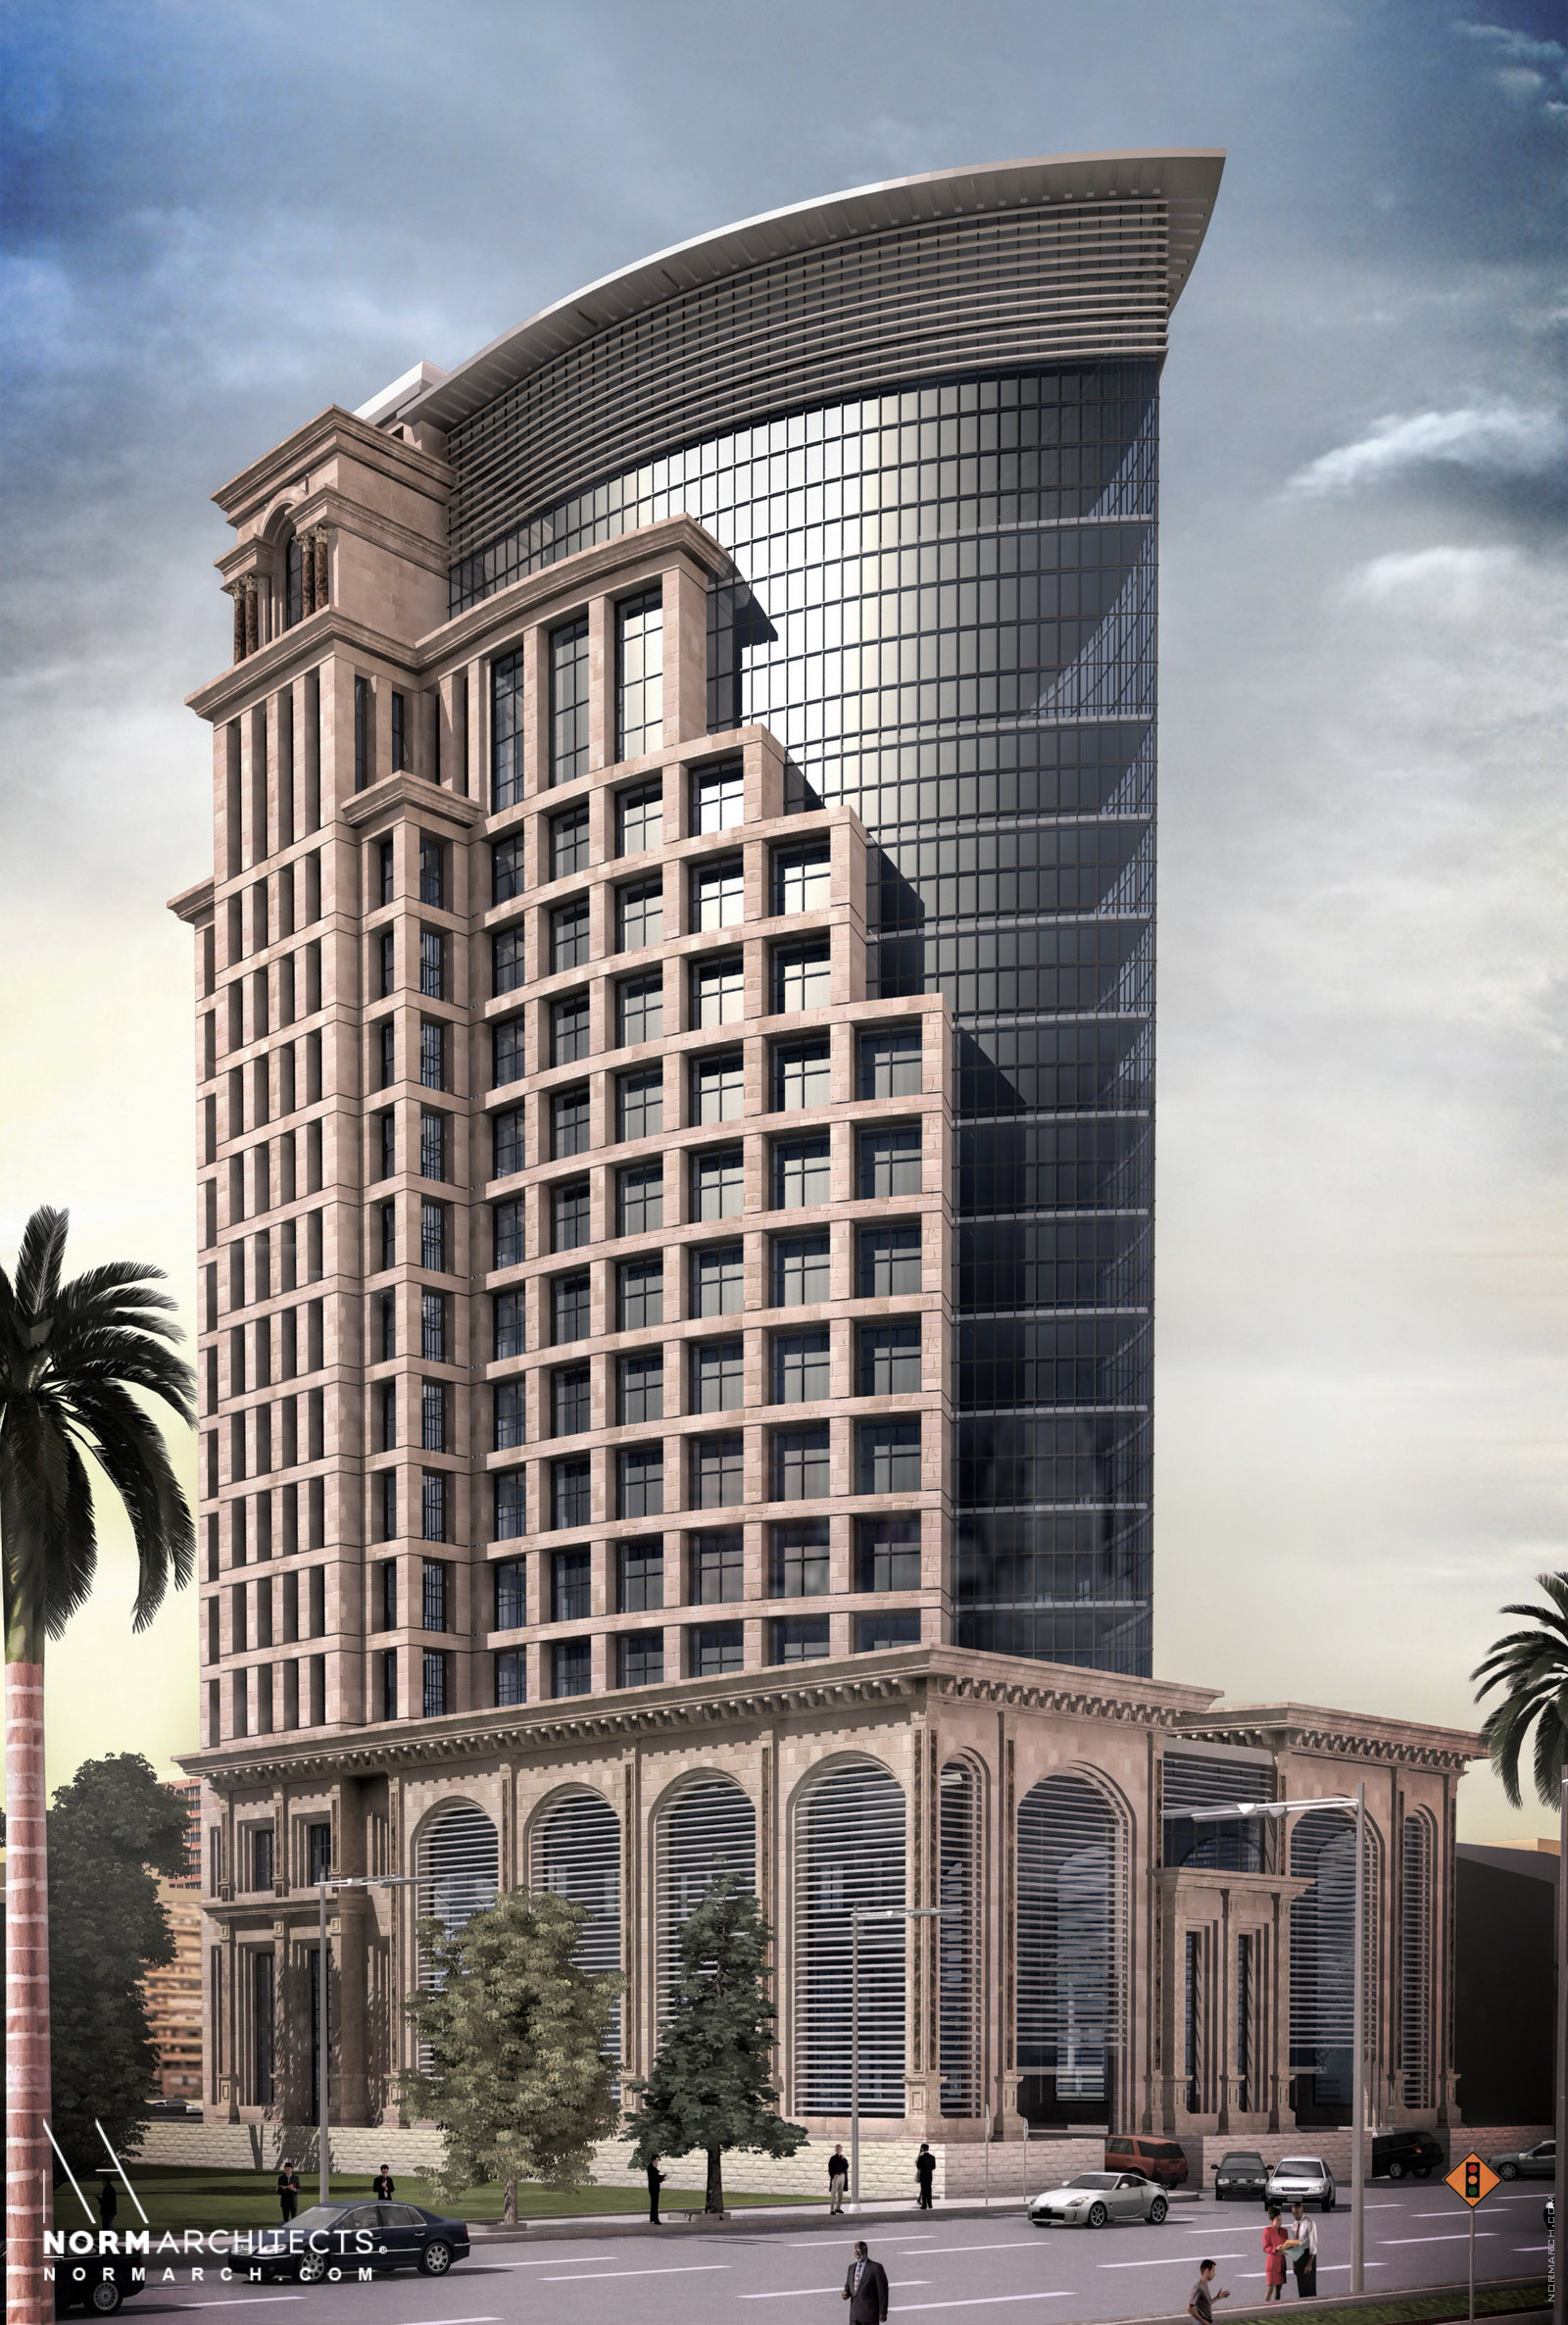 Al-Zamil Tower - Norm Architects